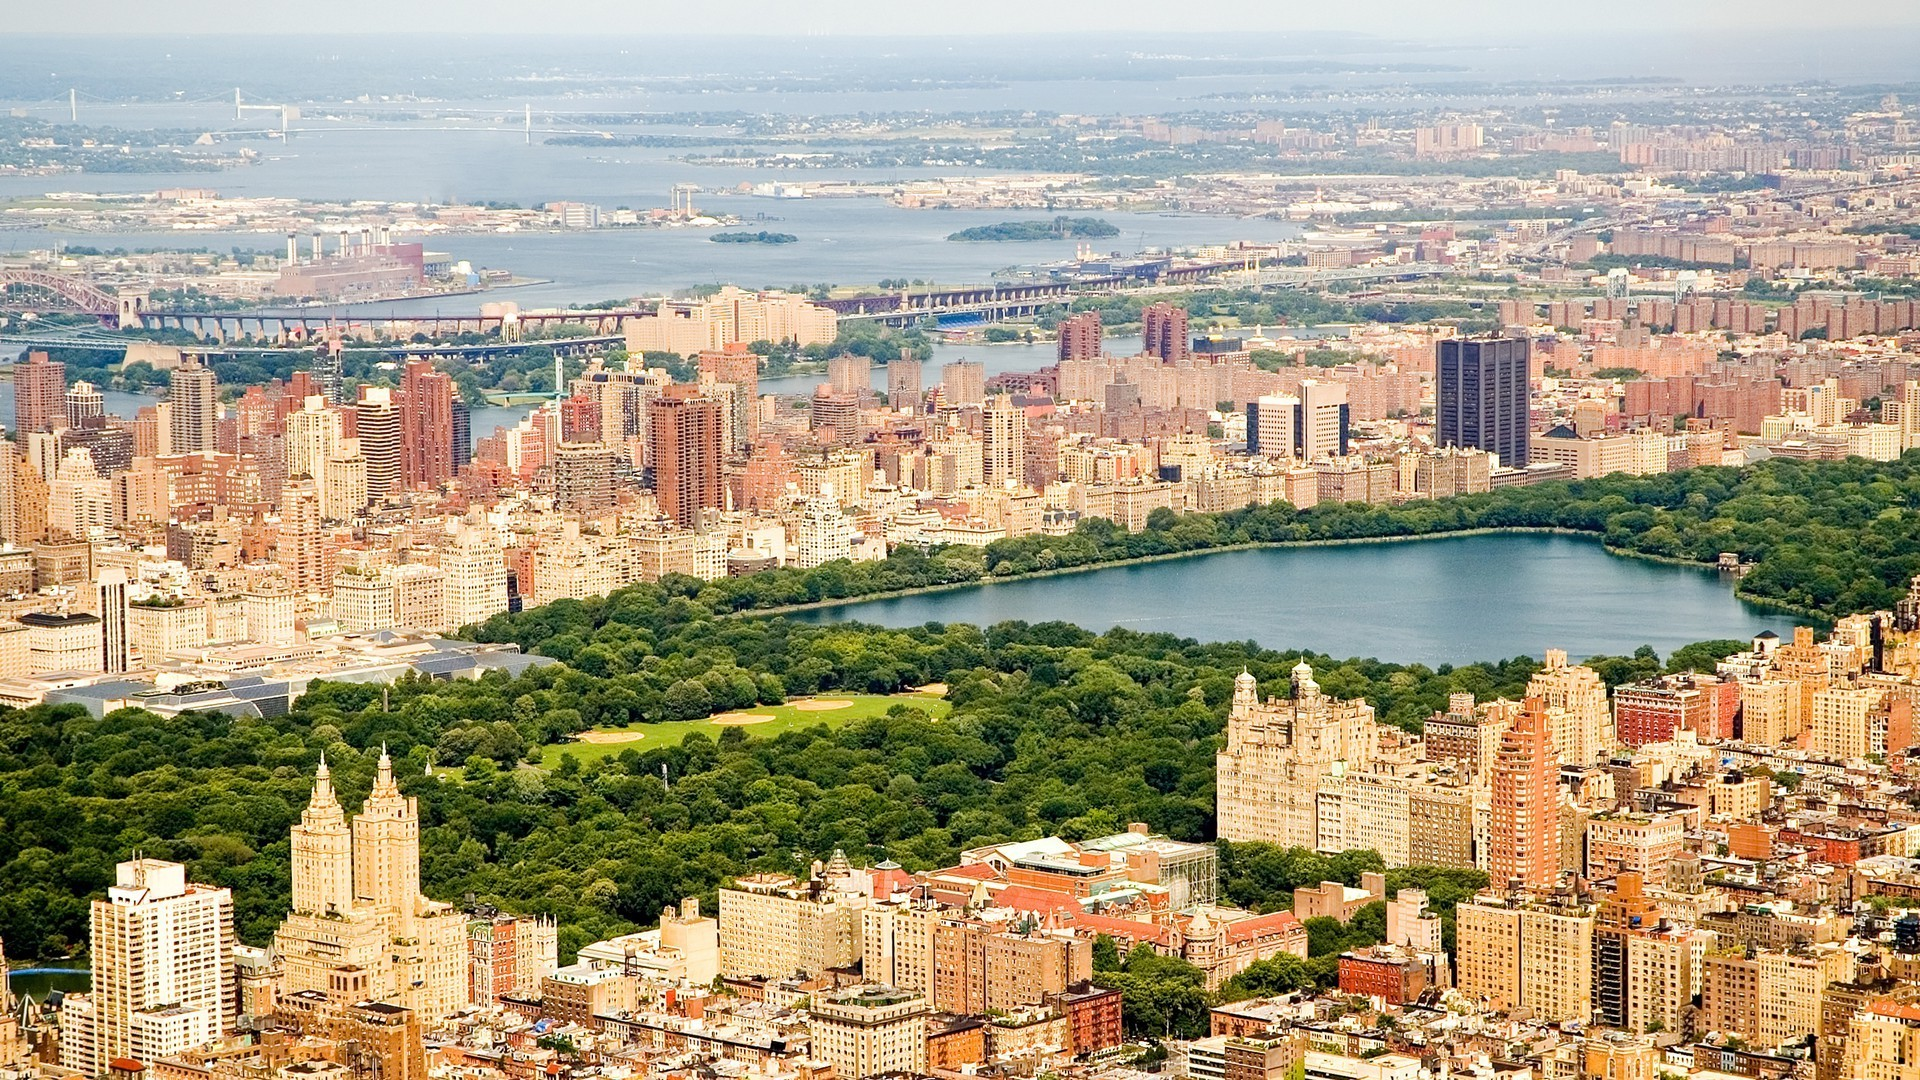 1920x1080 cityscape, Architecture, Building, City, New York City, USA, Water, Central  Park, Trees, Lake, Sea, Bridge, Skyscraper, Birds Eye View Wallpapers HD ...